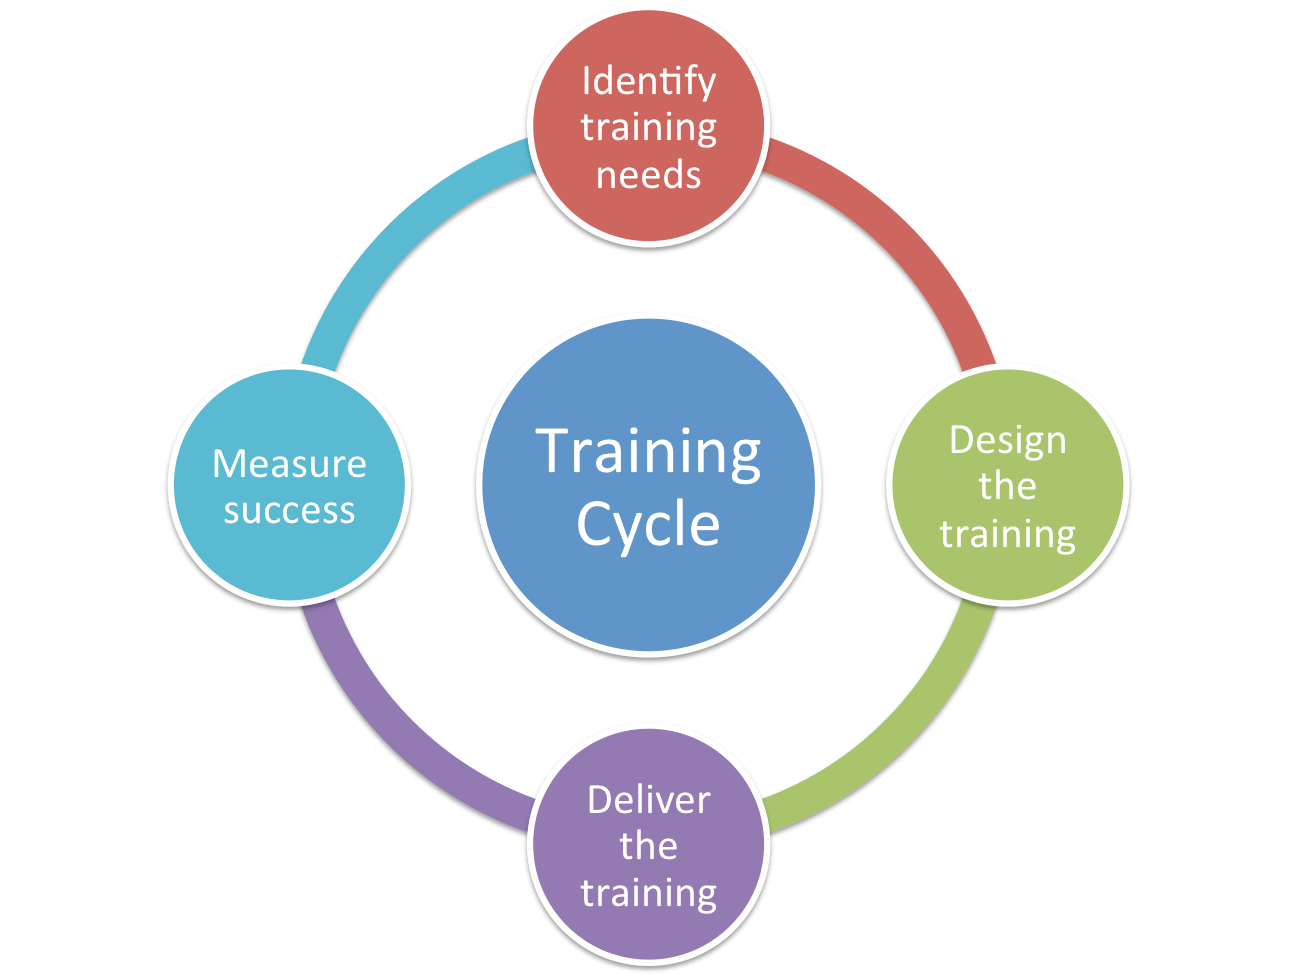 diagram of learning cycle how to wire electric fence an beautiful plete training artikeltraining